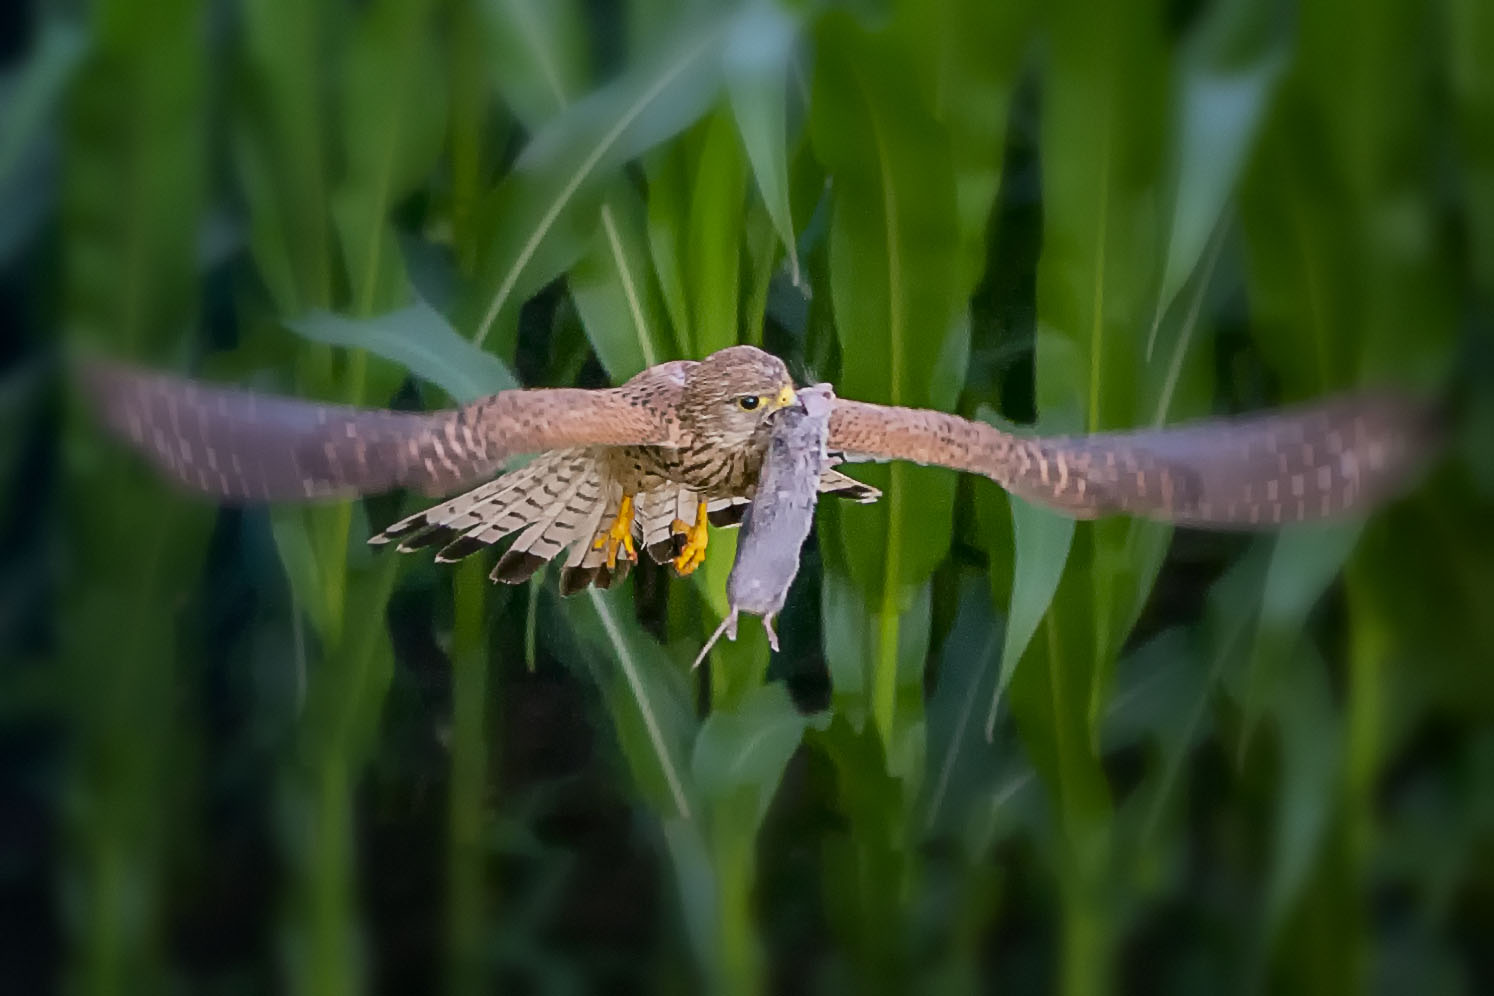 Kestrel with food